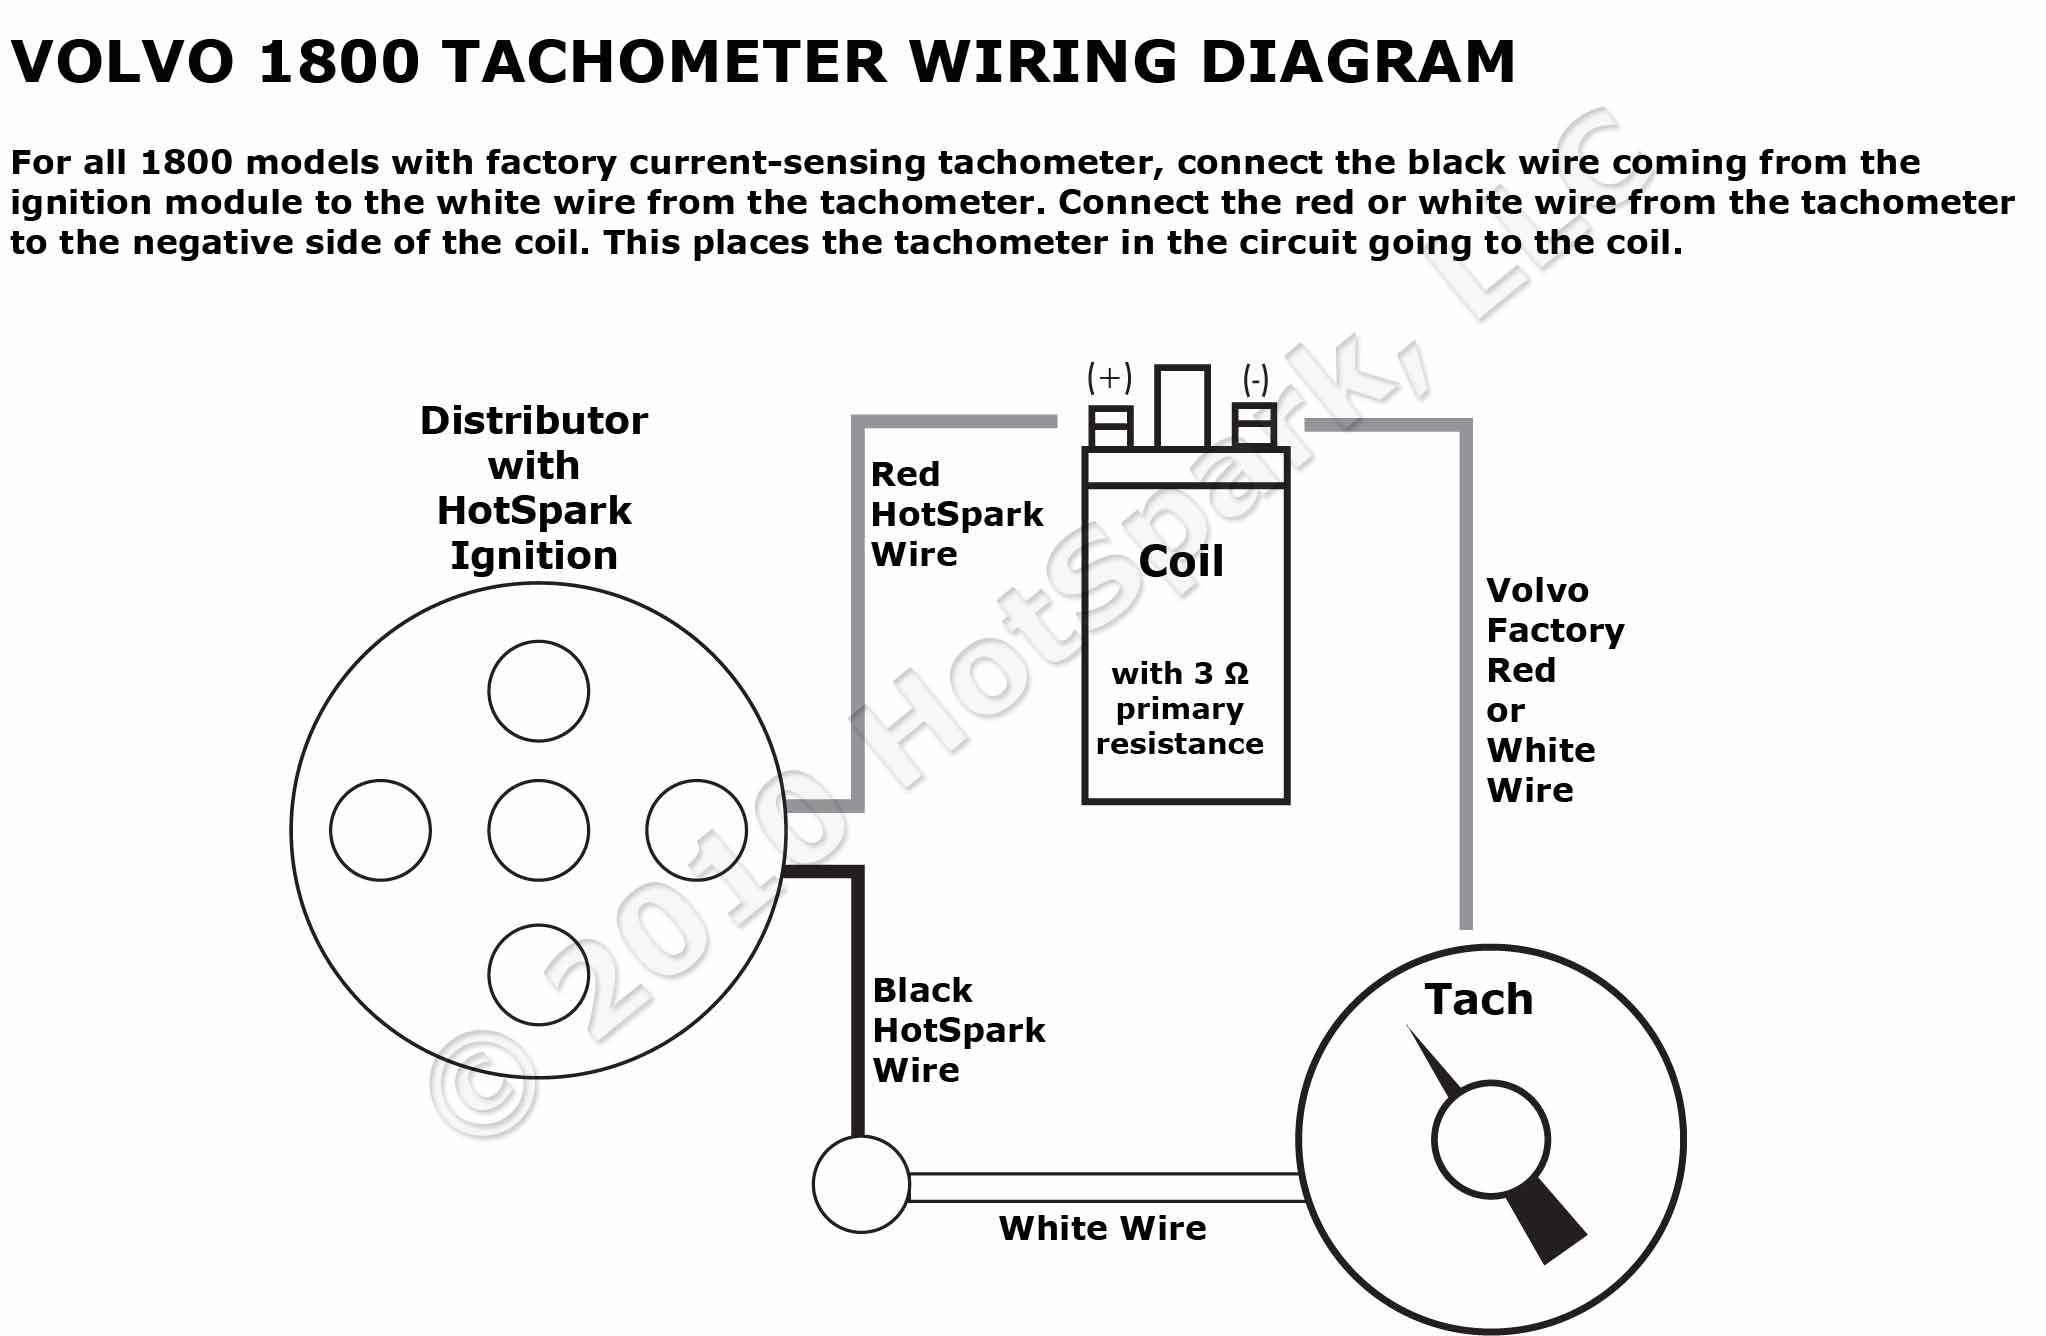 Volvo 1800 Tachometer and Hot Spark Wiring Diagram volvo 1800 tachometer wiring diagram with hotspark ignition tachometer wiring diagram at n-0.co